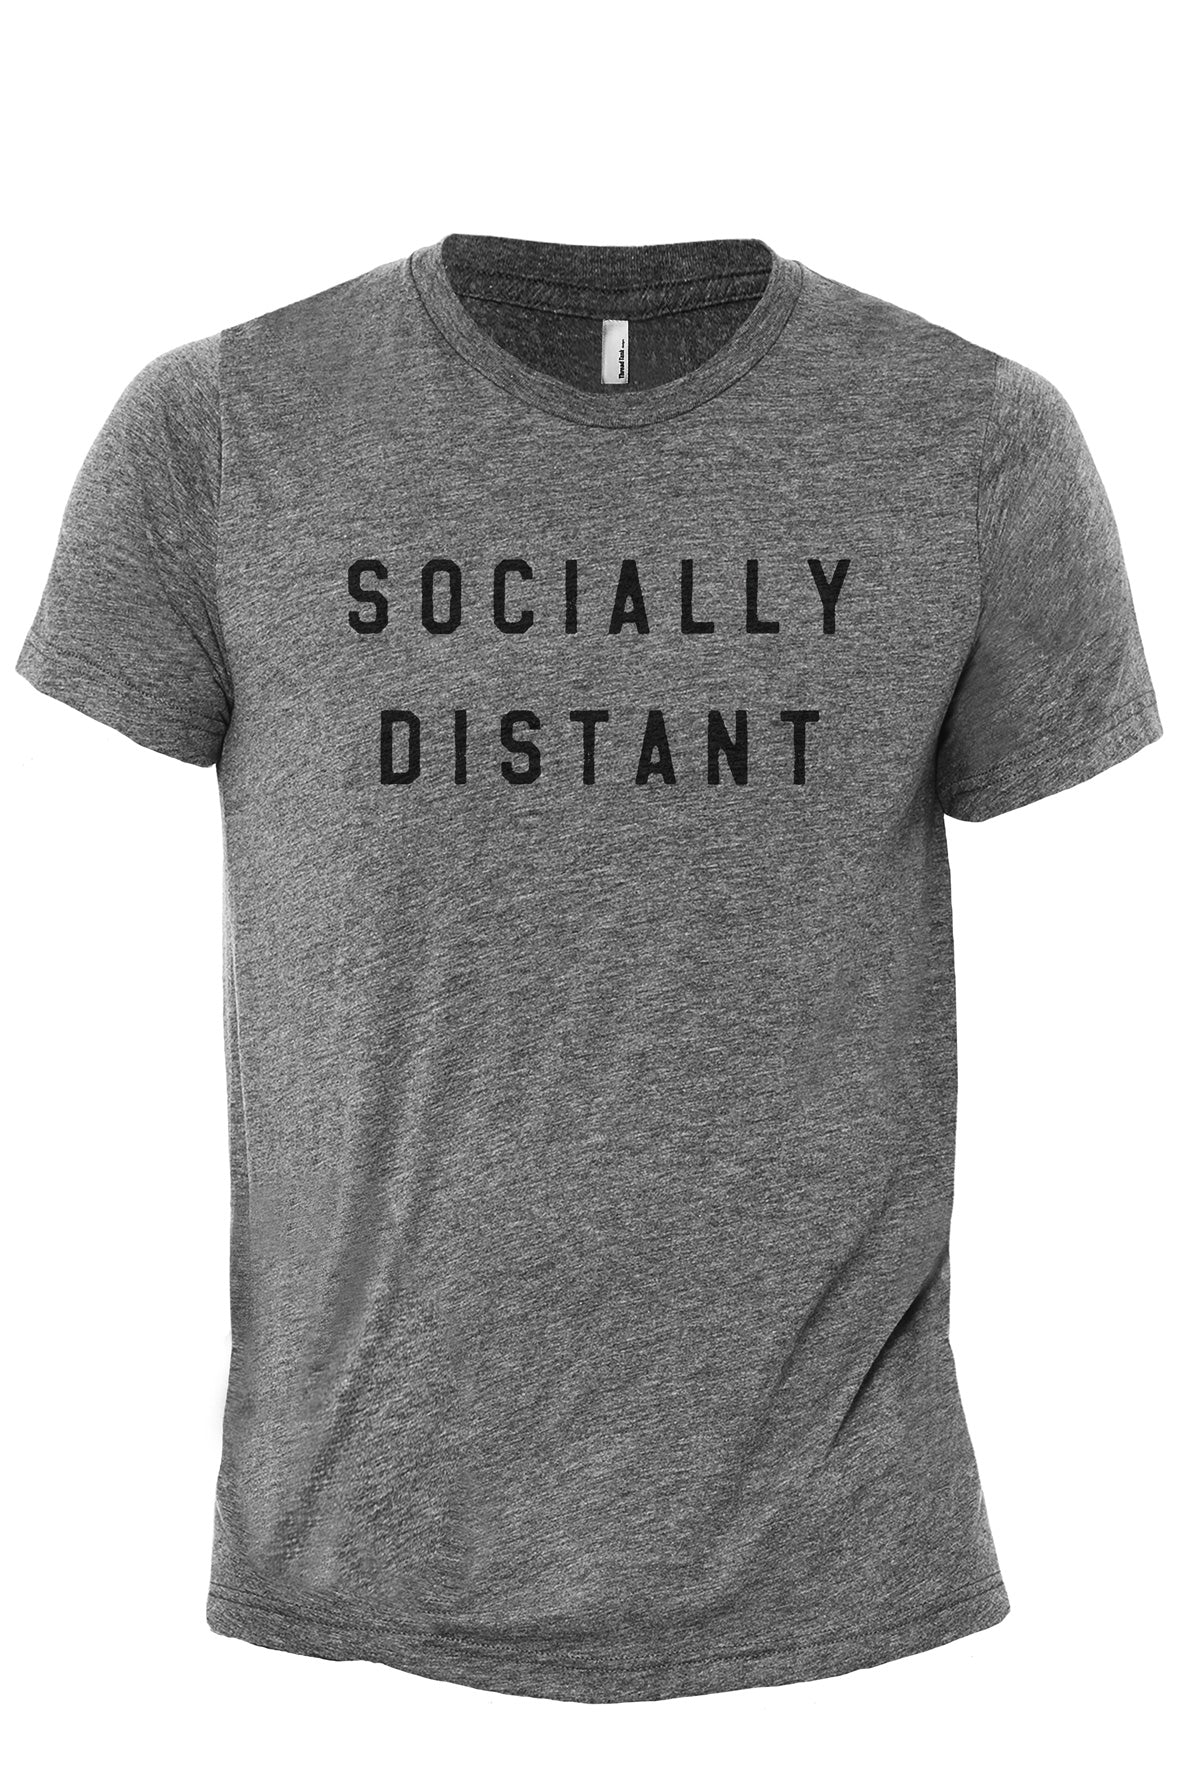 Socially Distant Heather Grey Printed Graphic Men's Crew T-Shirt Tee